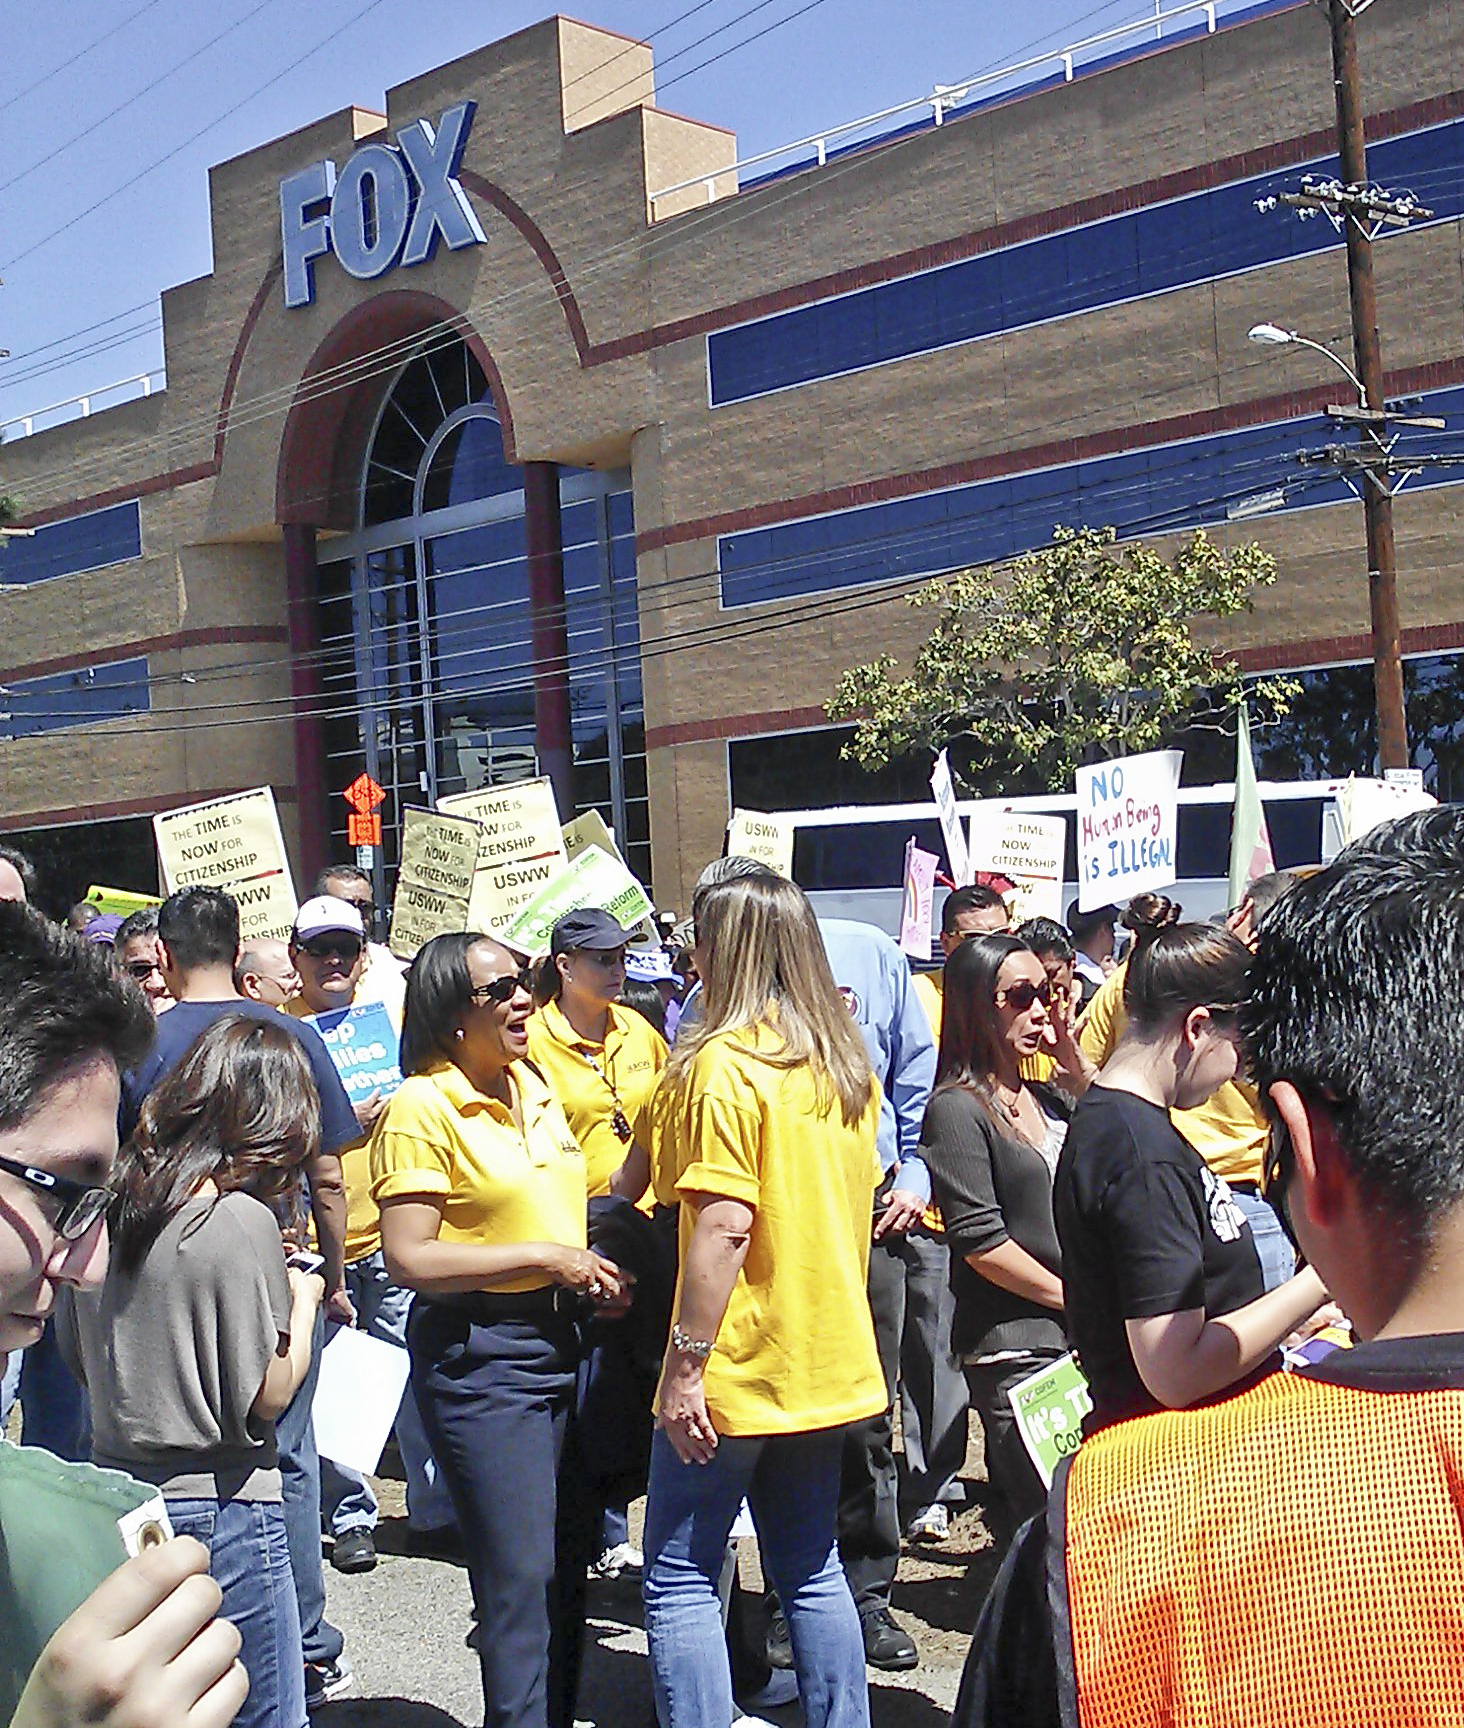 Latest News About Immigration Reform 2013: H.O.P.E. For Immigration Reform